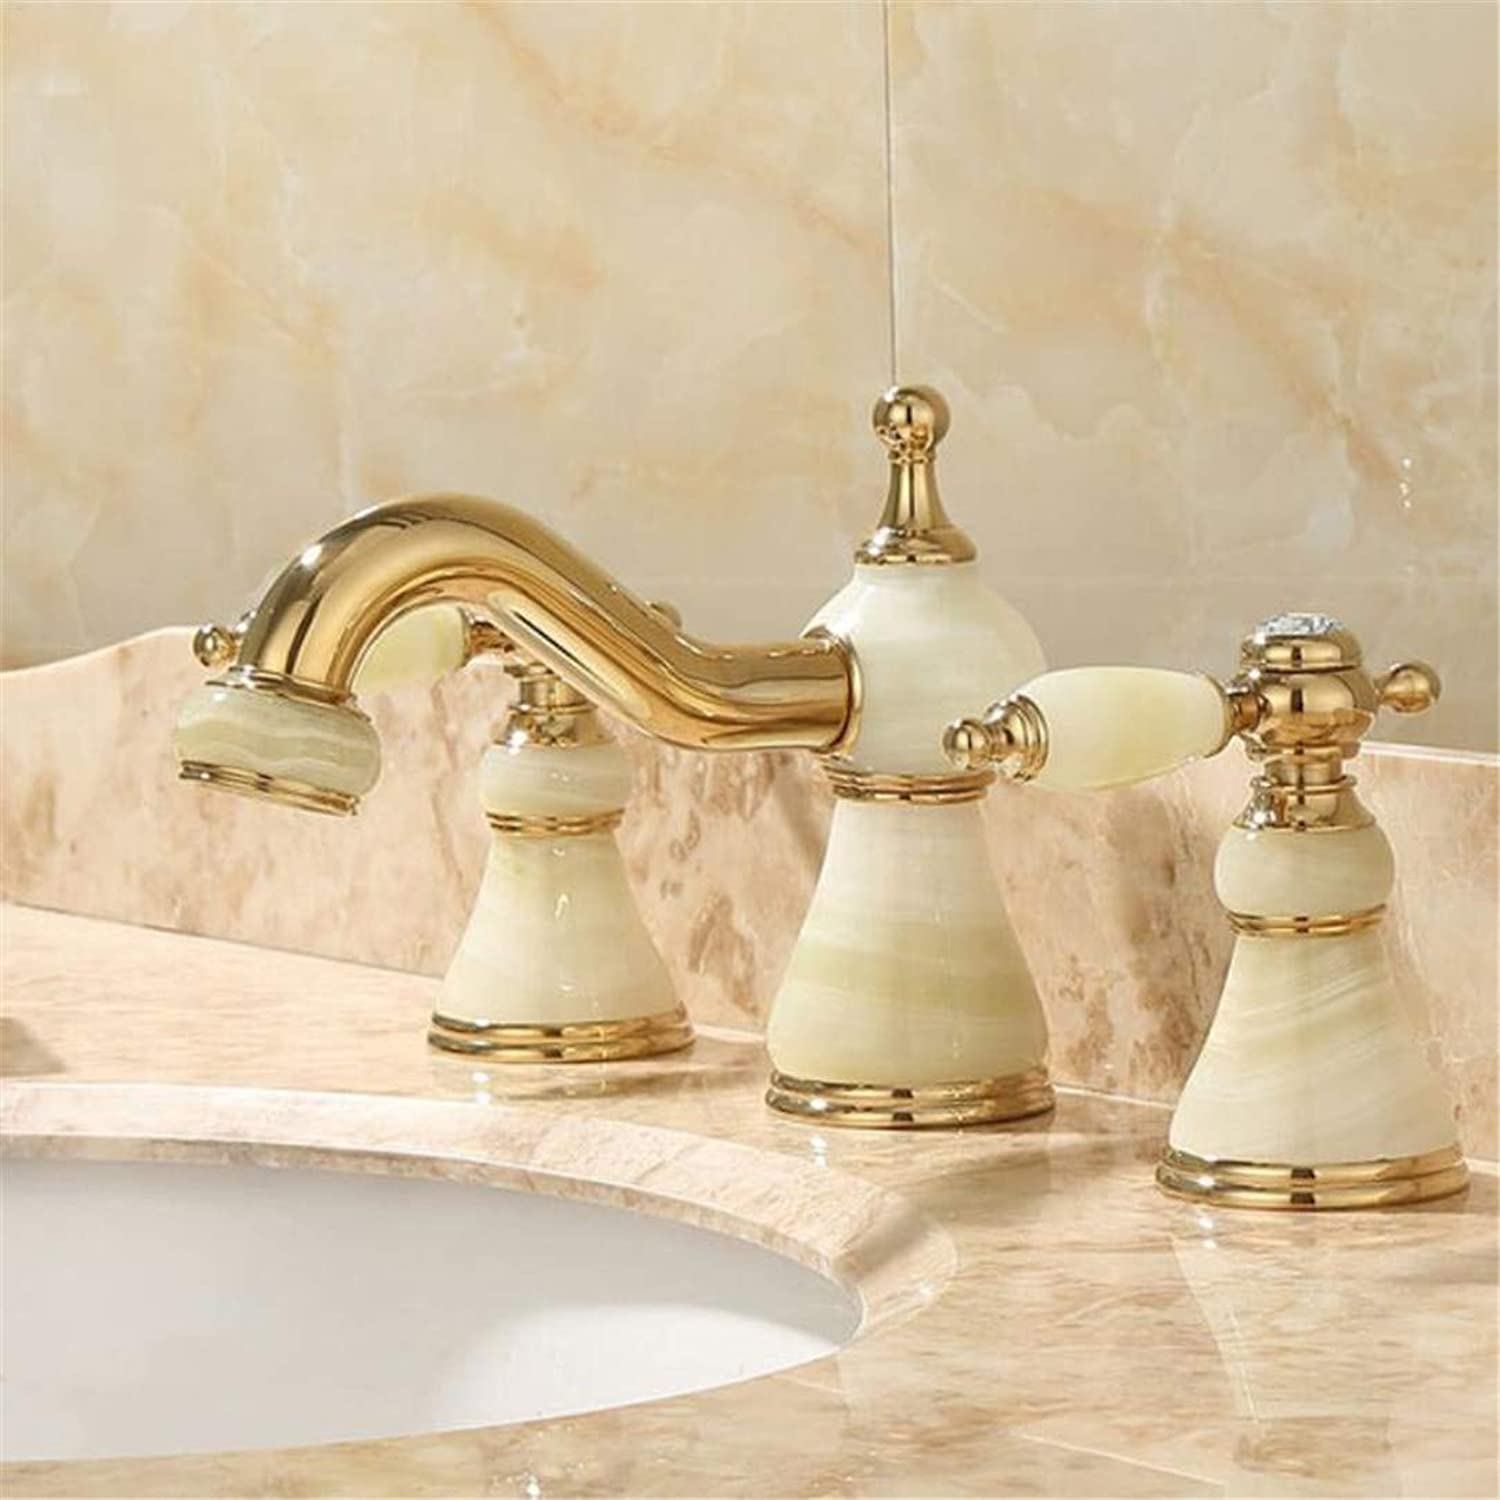 Faucet Washbasin Mixergold Jade Double Handle Three Hole Sink Basin Faucet Cold Hot Water Mixer Taps Bathroom Basin